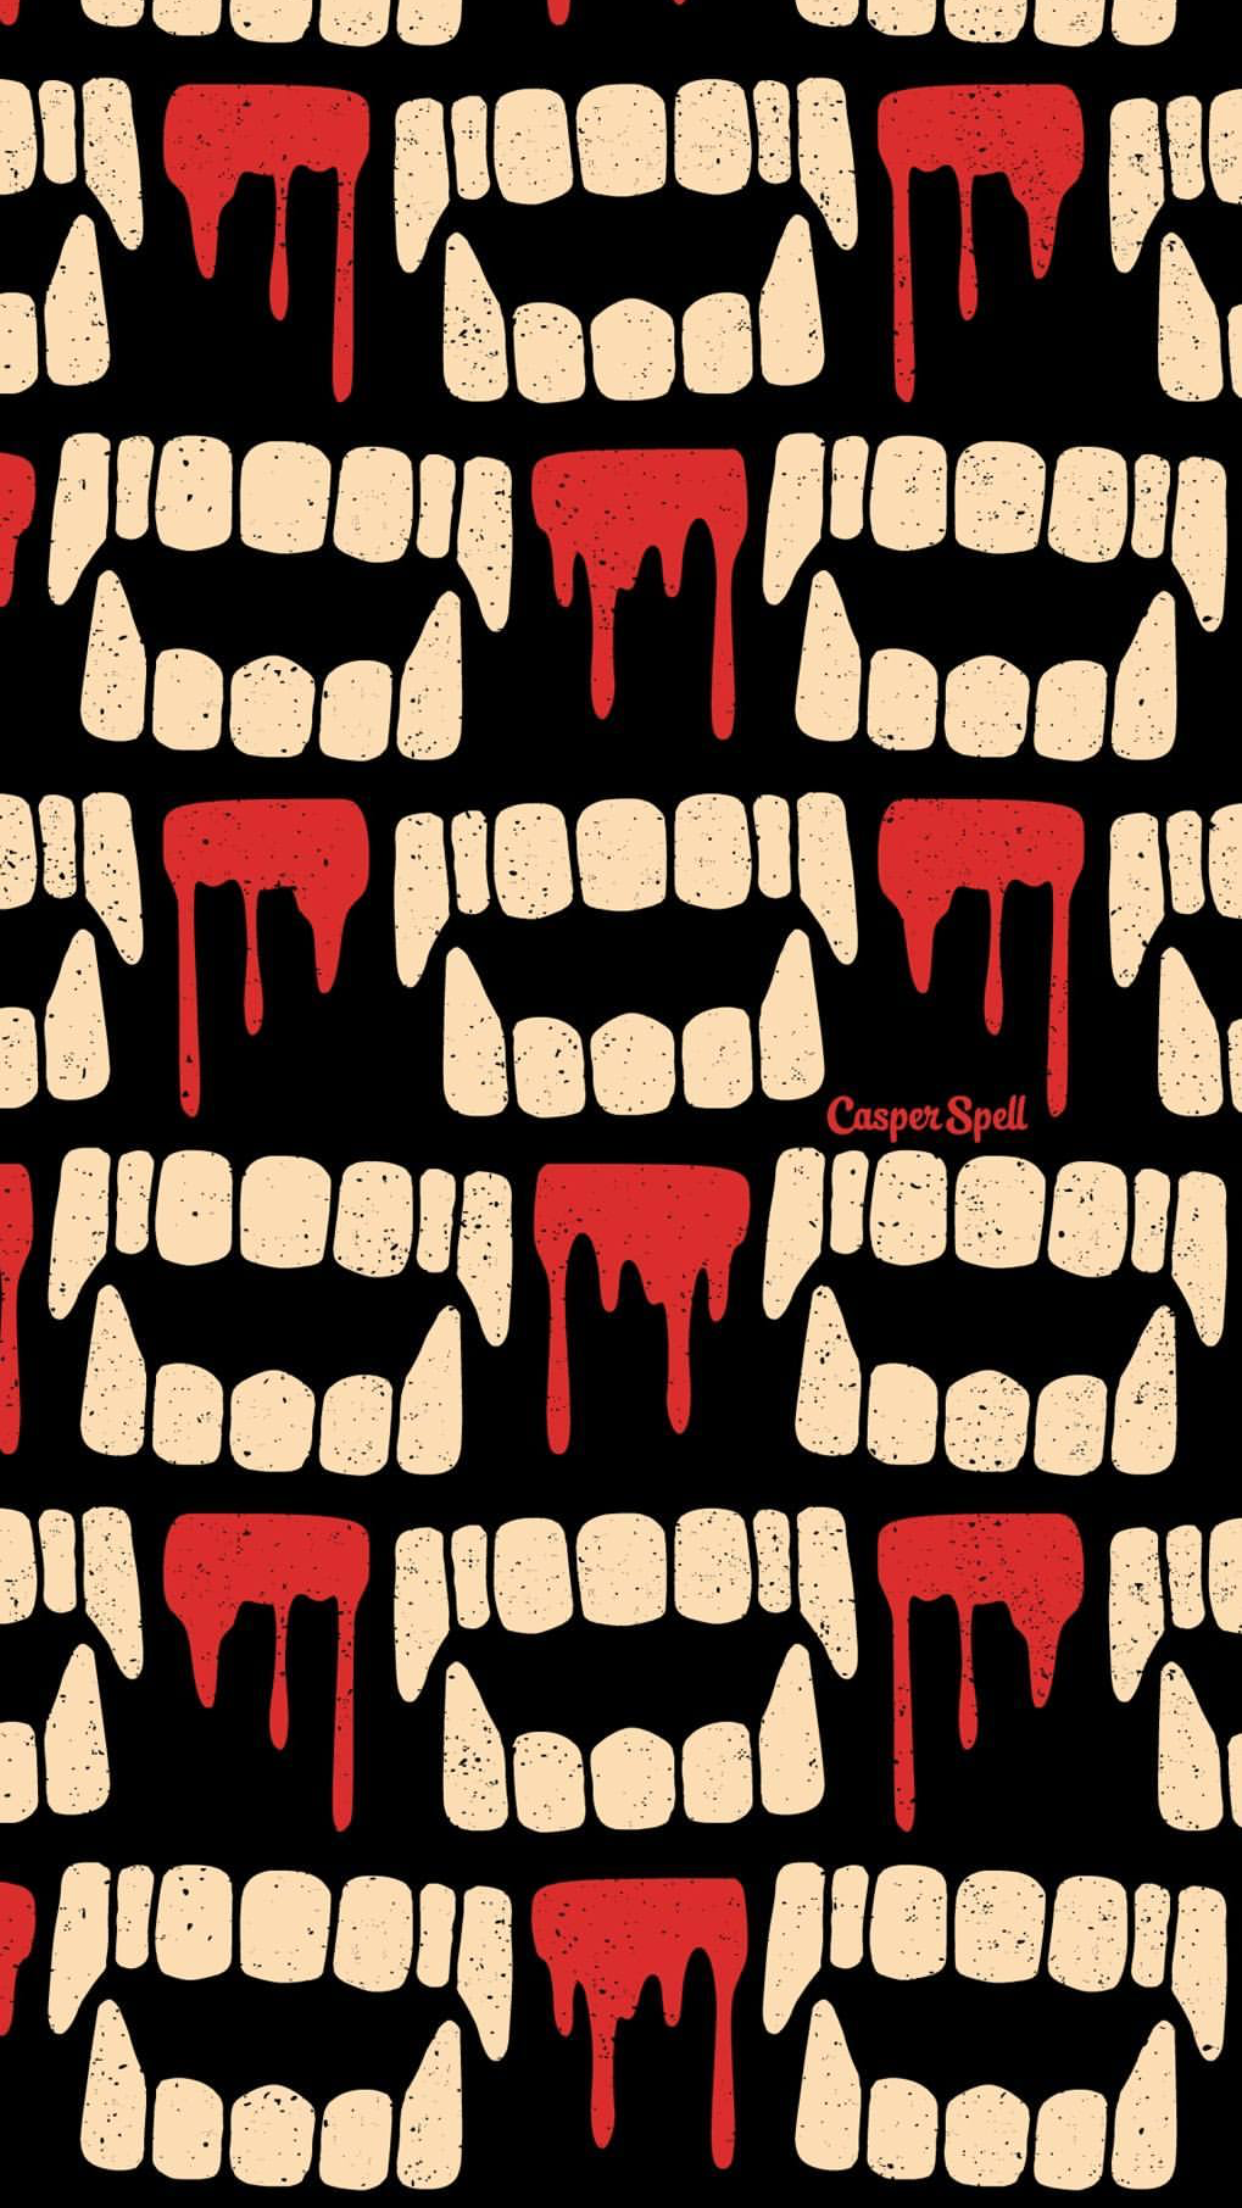 Vampire By Artist Casper Spell Wallpaper Lock Screen Background For Android Cellp Halloween Wallpaper Iphone Halloween Wallpaper Lock Screen Wallpaper Iphone